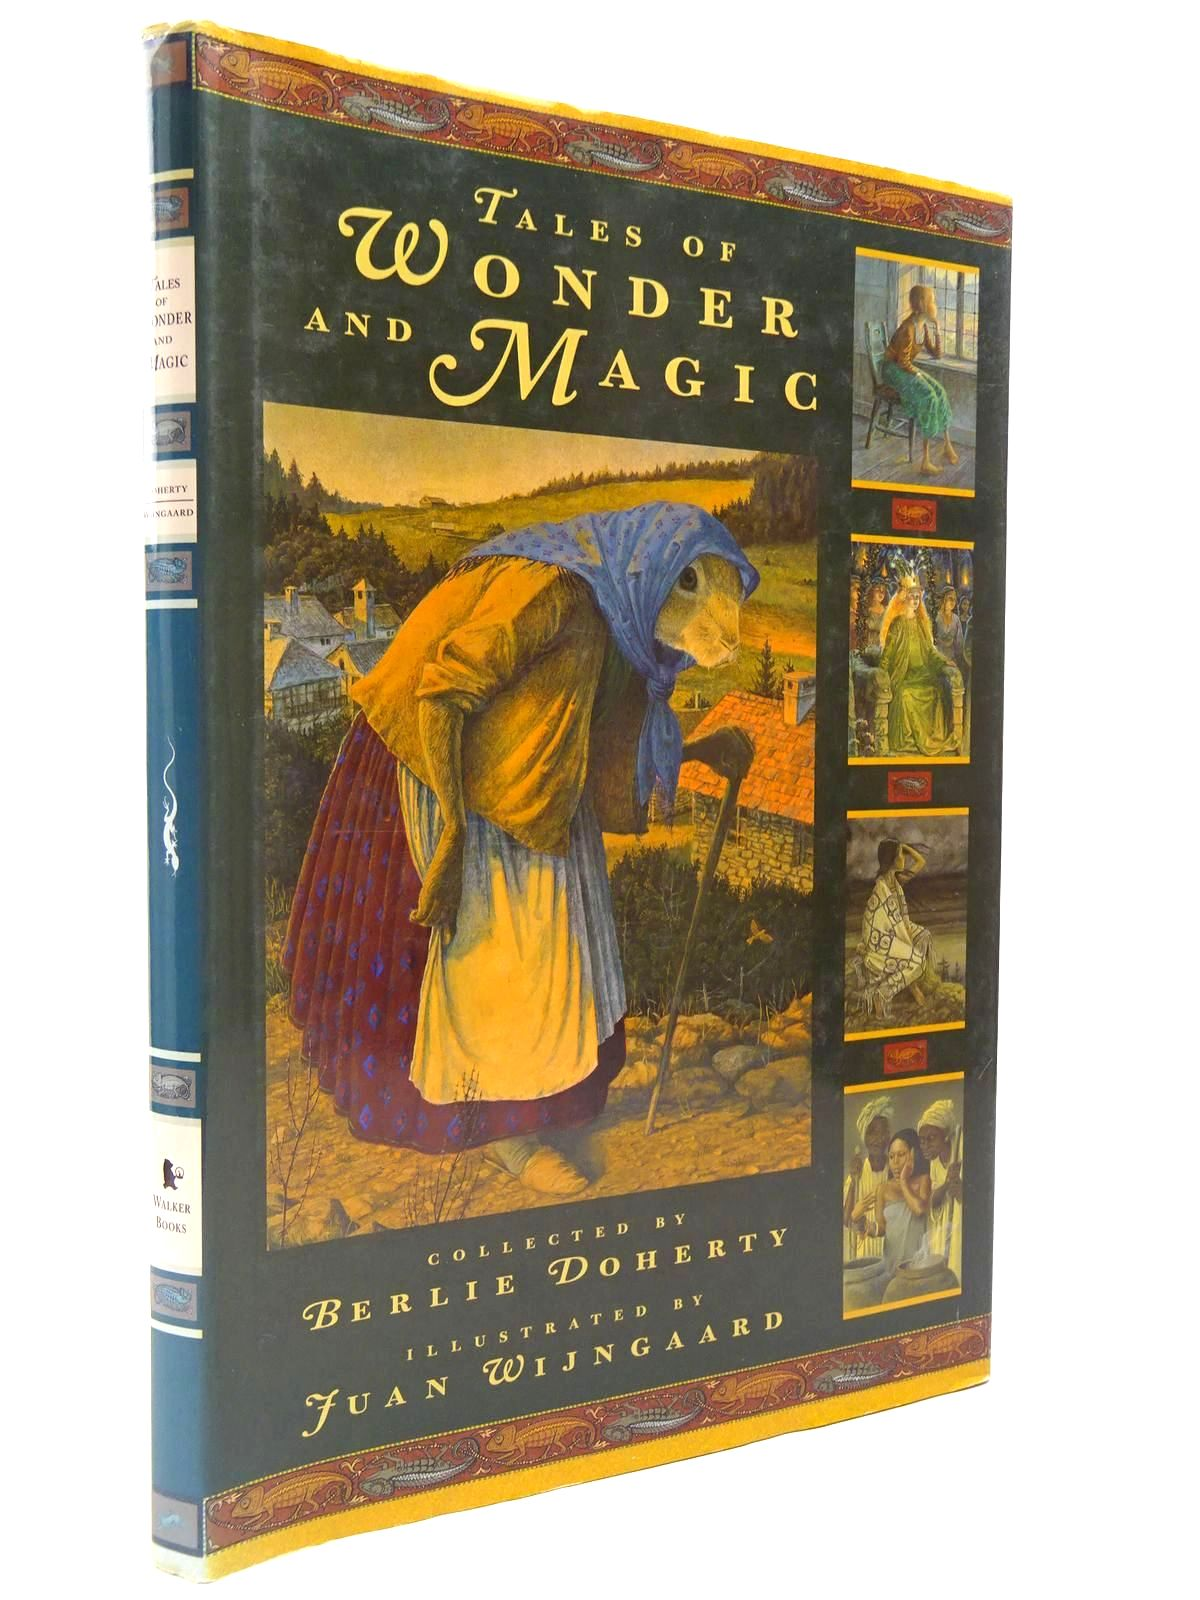 Photo of TALES OF WONDER AND MAGIC written by Doherty, Berlie illustrated by Wijngaard, Juan published by Walker Books (STOCK CODE: 2130007)  for sale by Stella & Rose's Books